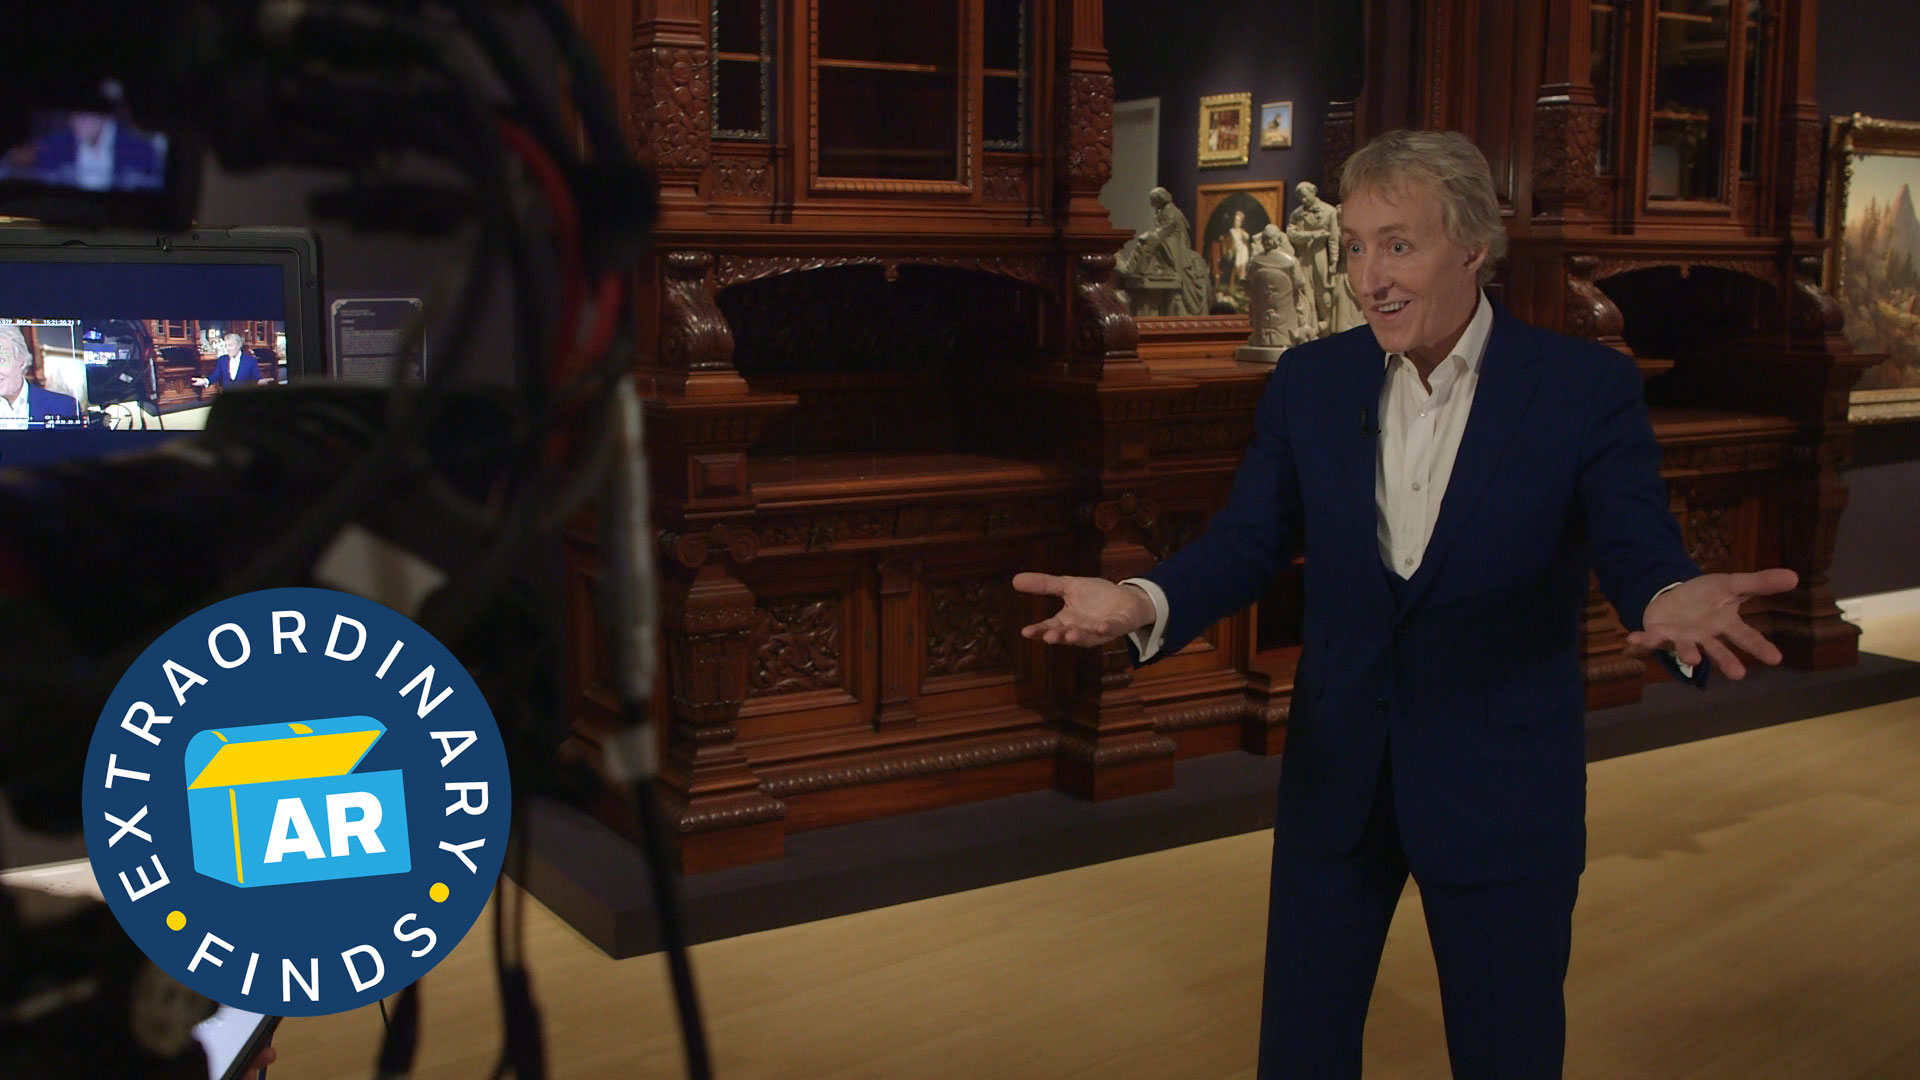 Extraordinary Finds | Antiques Roadshow | PBS